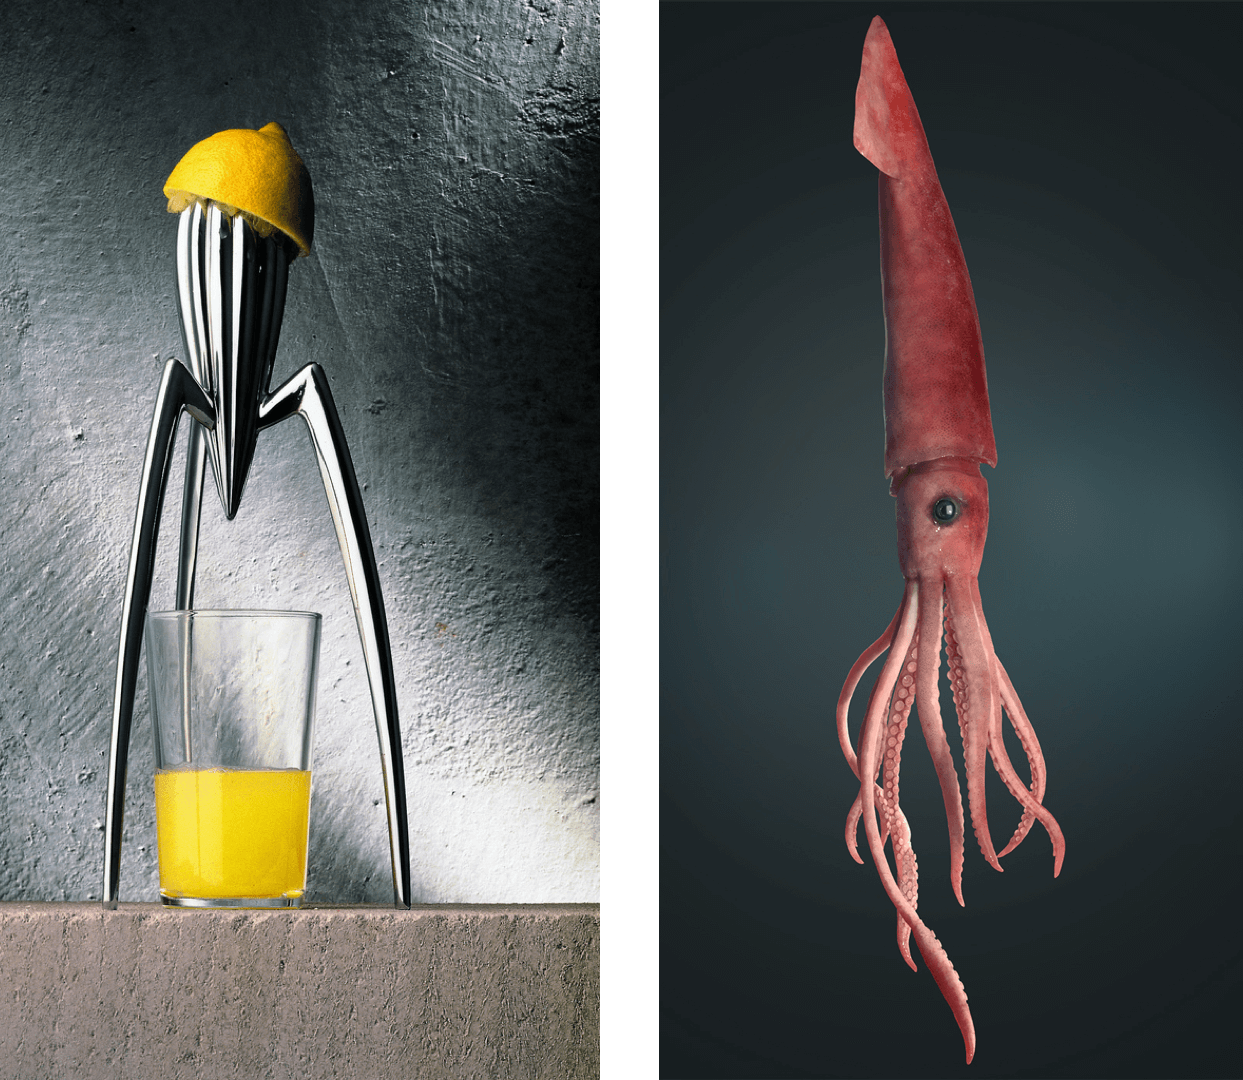 philippe starck's squeezer and squid